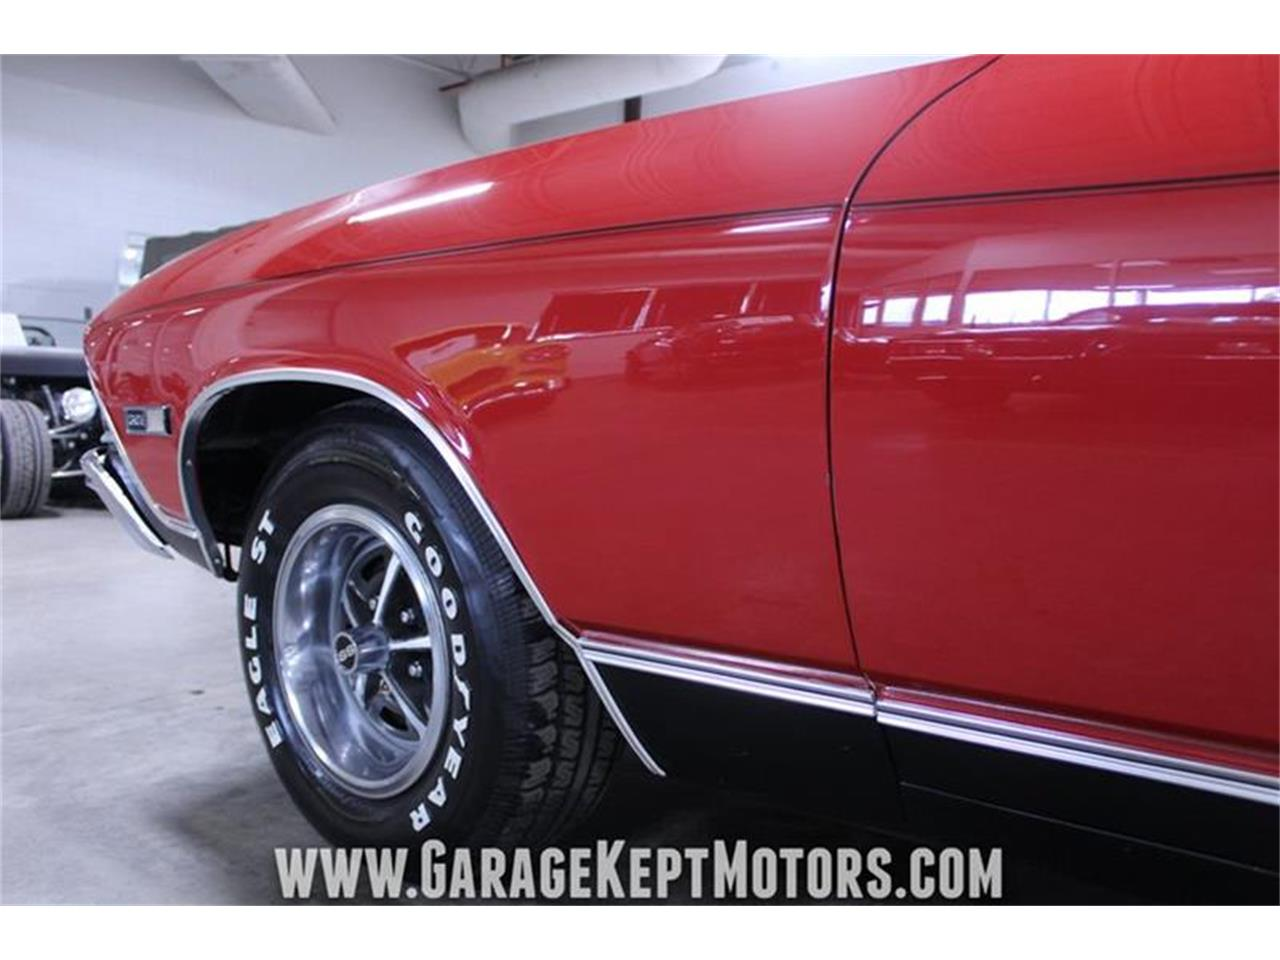 Large Picture of '68 Chevrolet Chevelle - $49,900.00 - PWYE